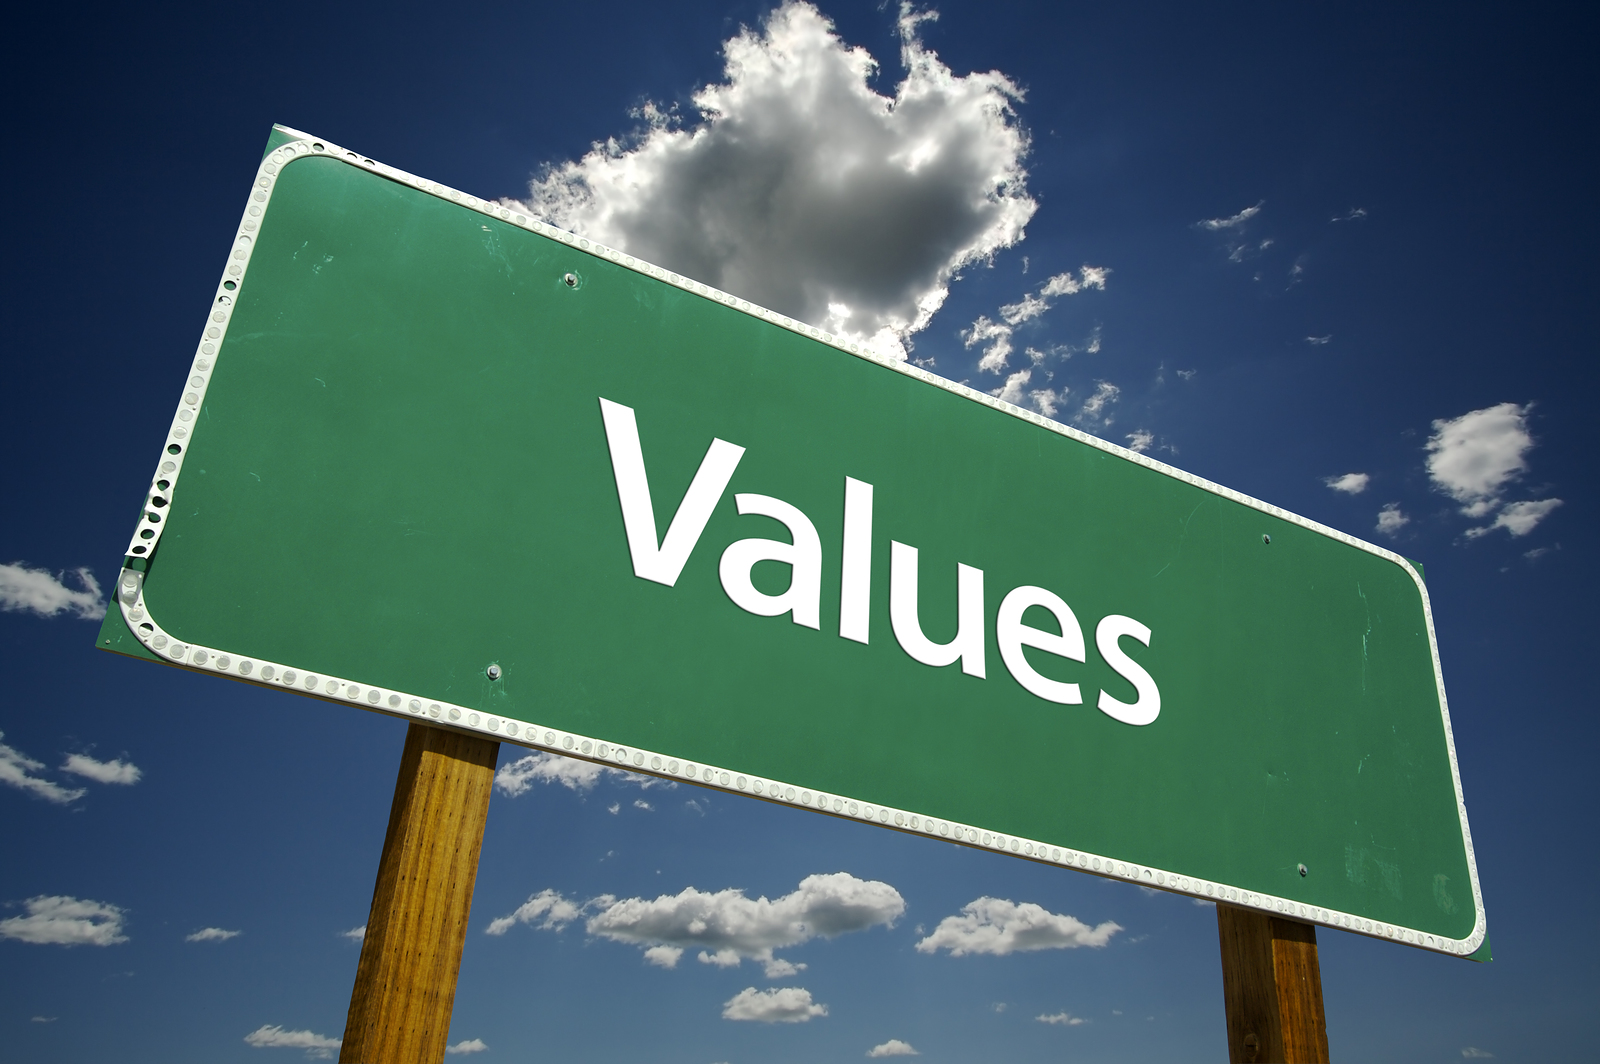 mergers and acquisitions understanding workplace values understanding workplace values